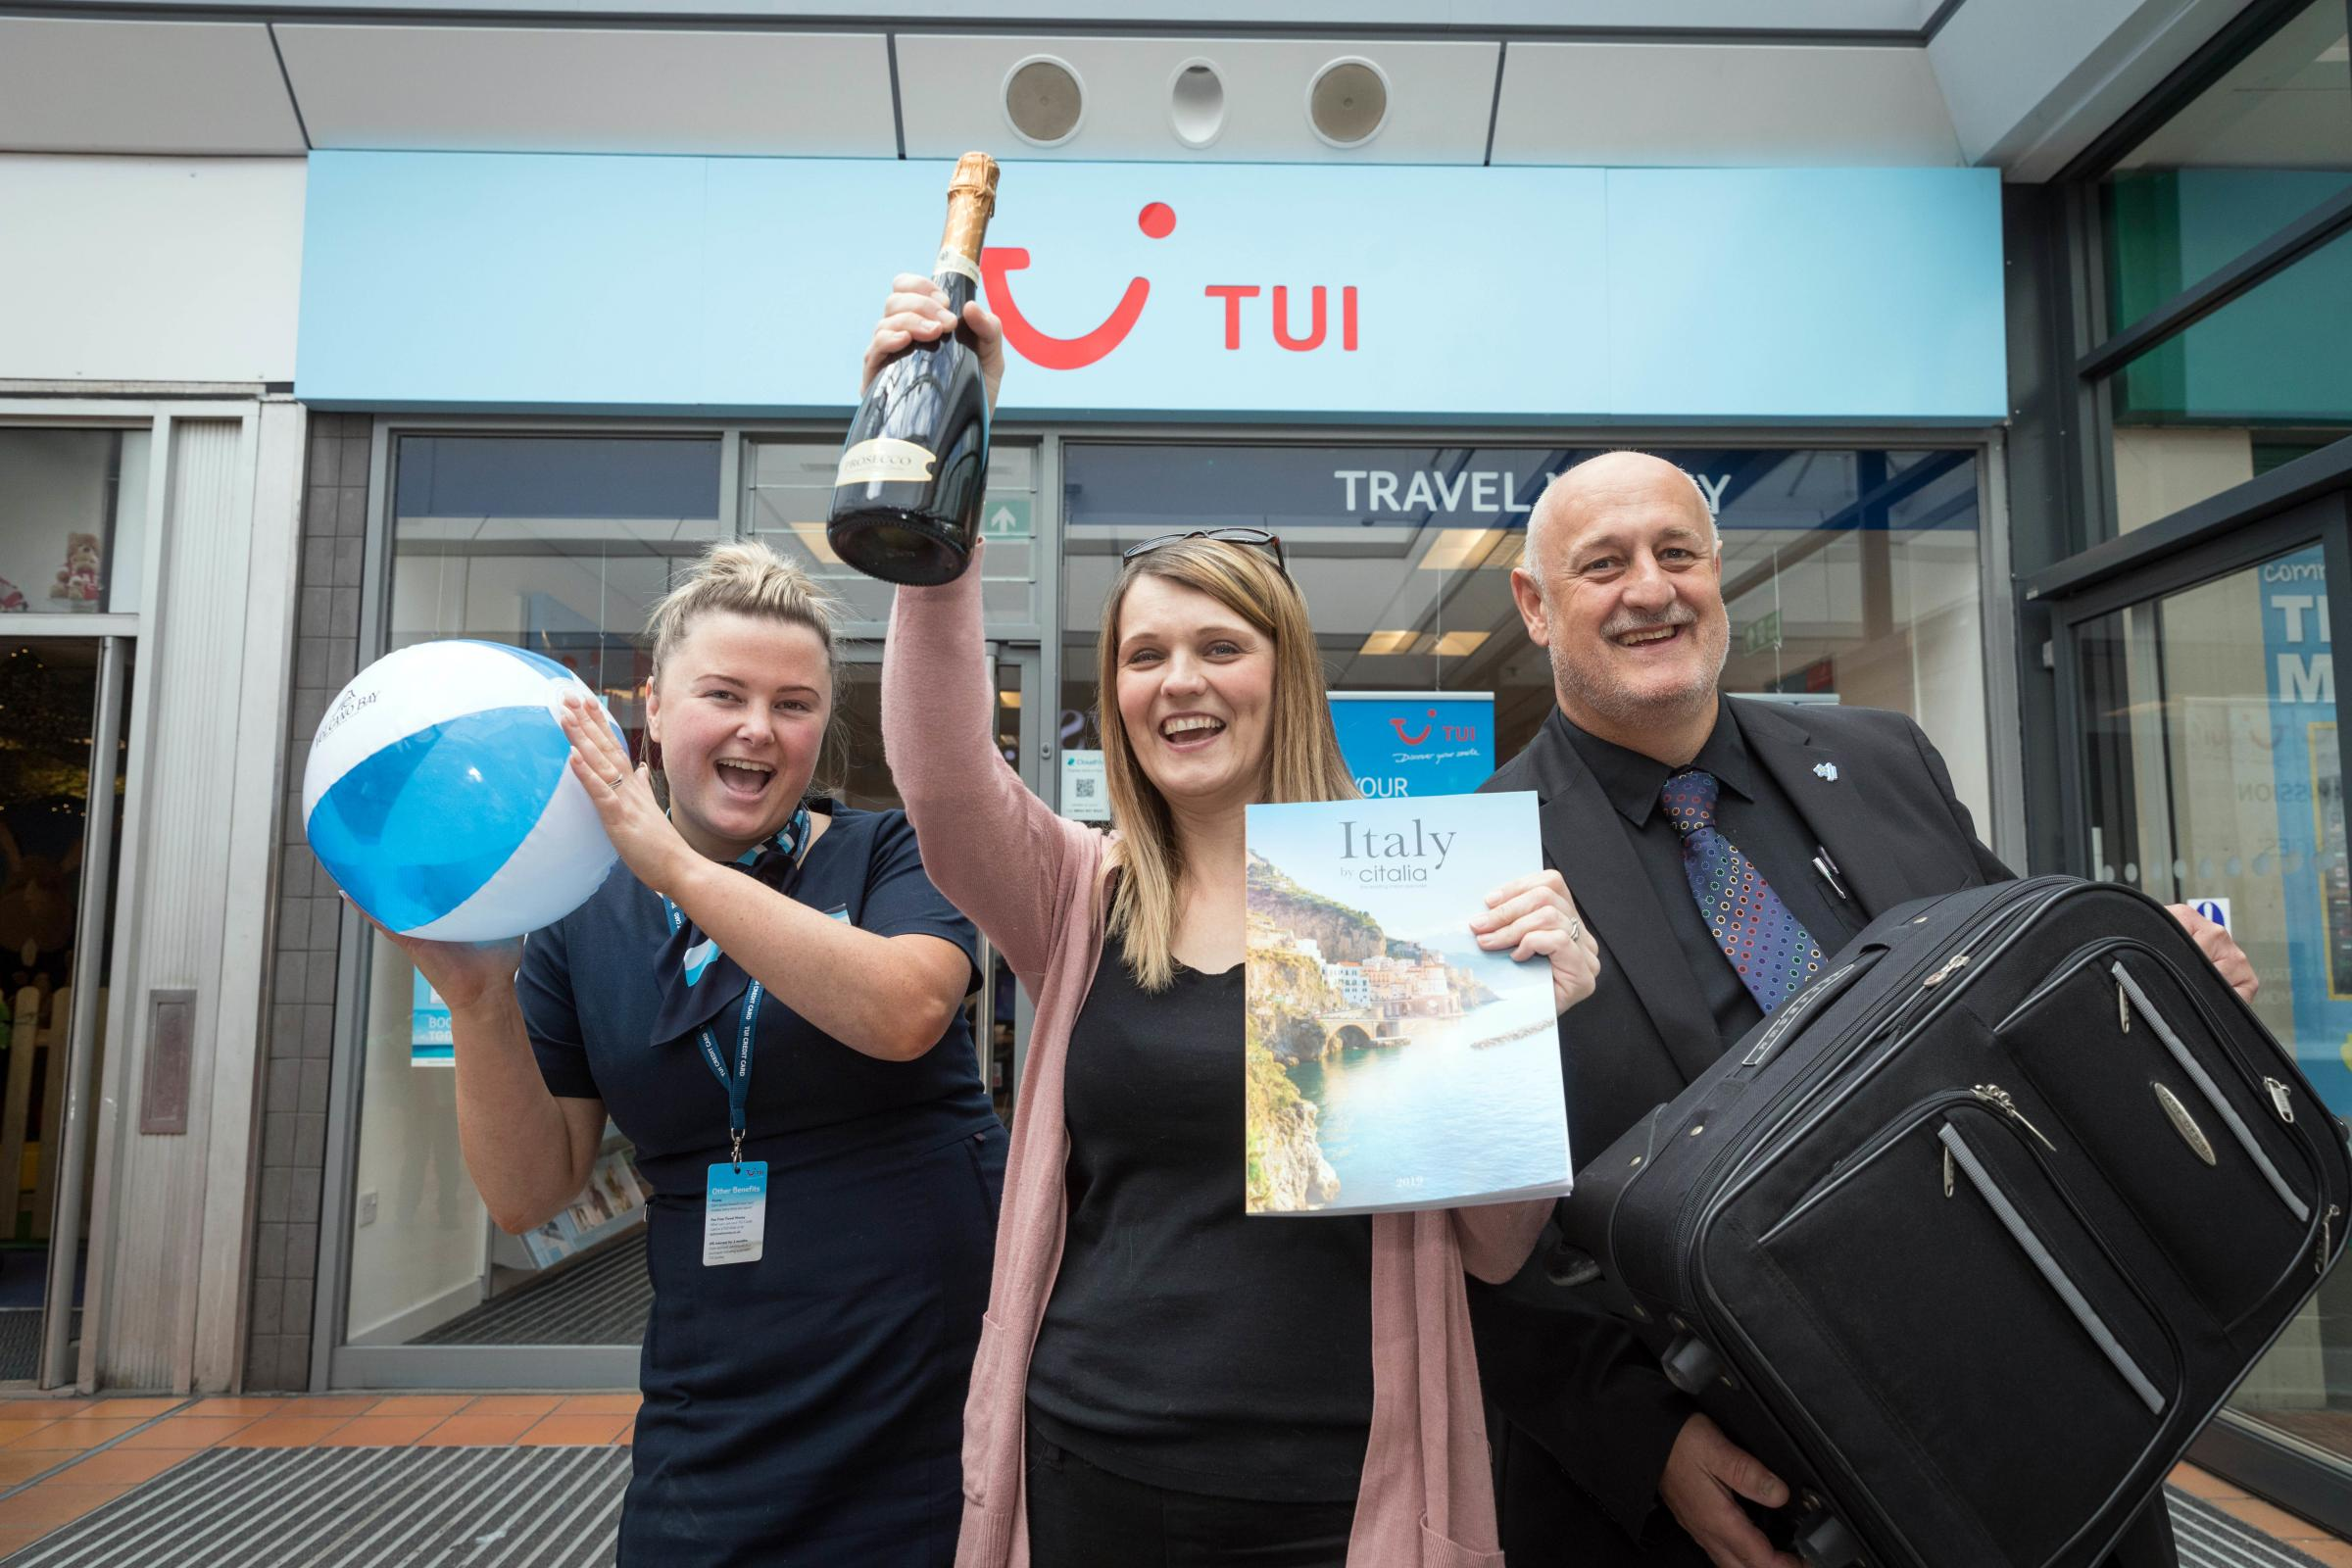 Winner Debbie Wharton, centre, celebrates with Airedale Shopping Centre manager Steve Seymour and Danielle Jordinson, travel advisor with TUI